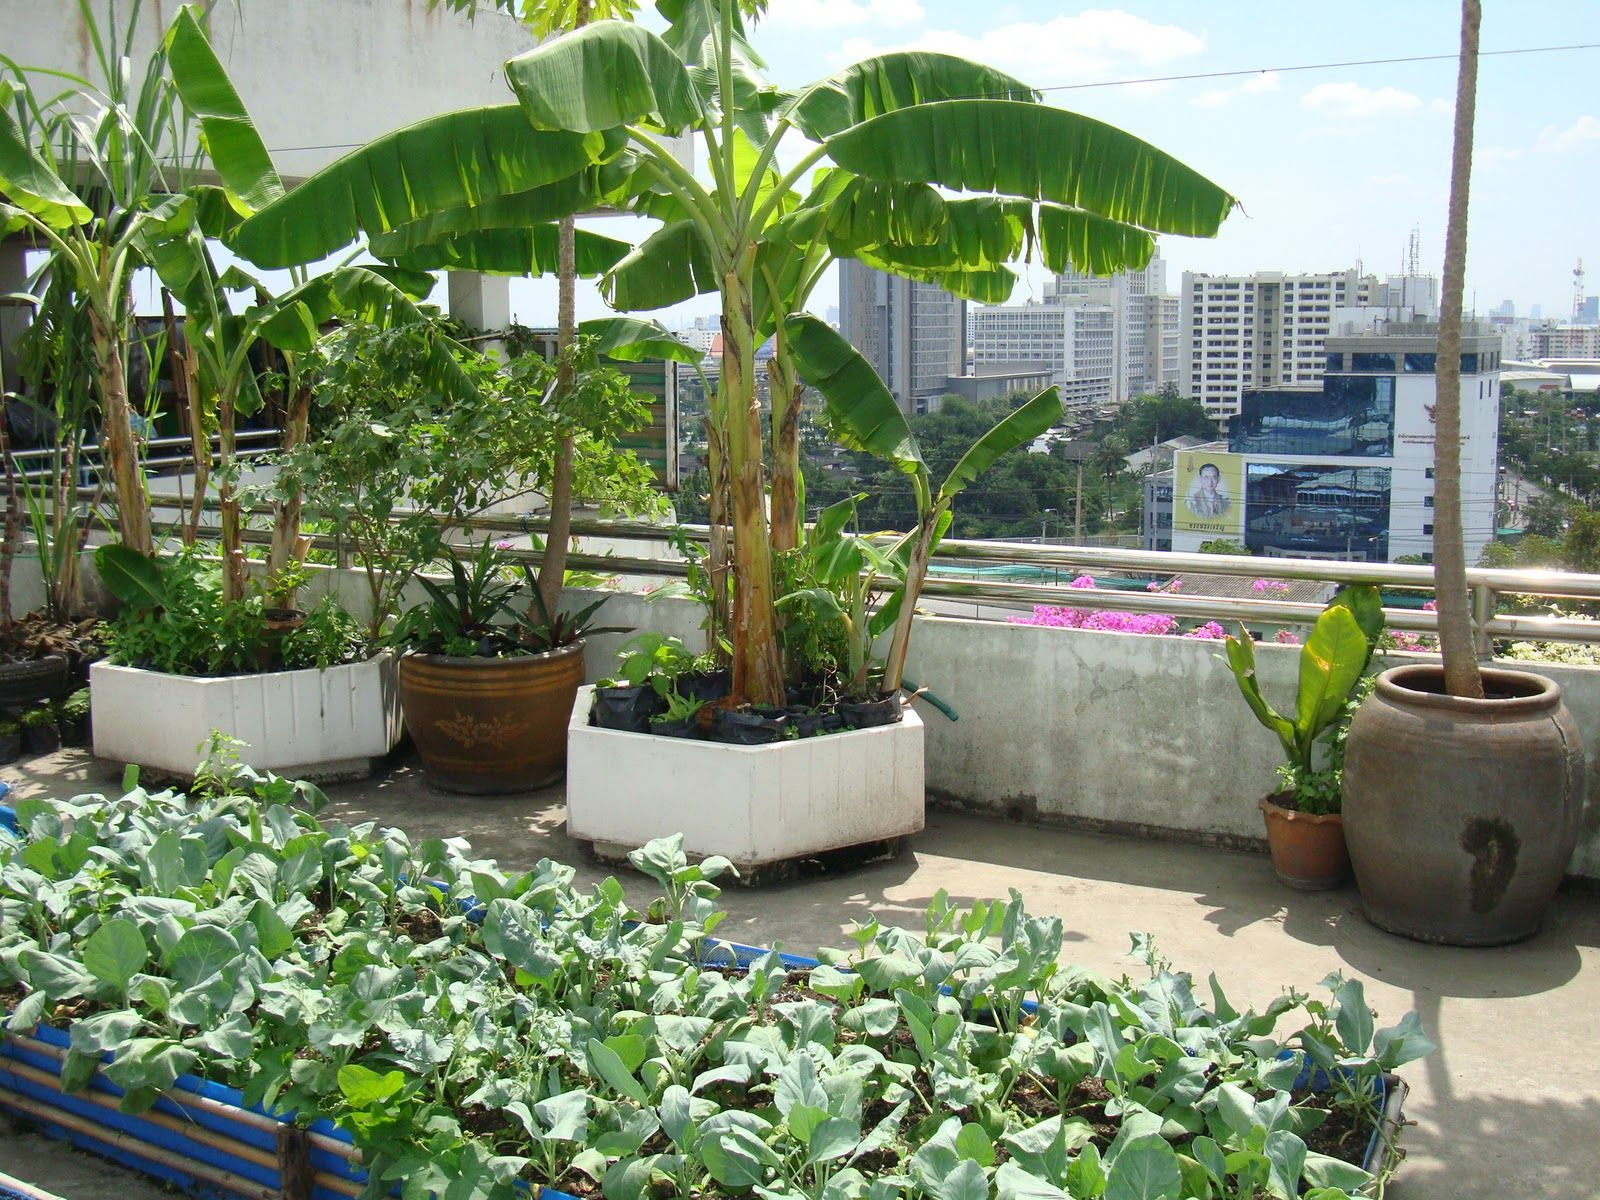 Rooftop garden creative landscape garden serenity for Terrace 6 indore images